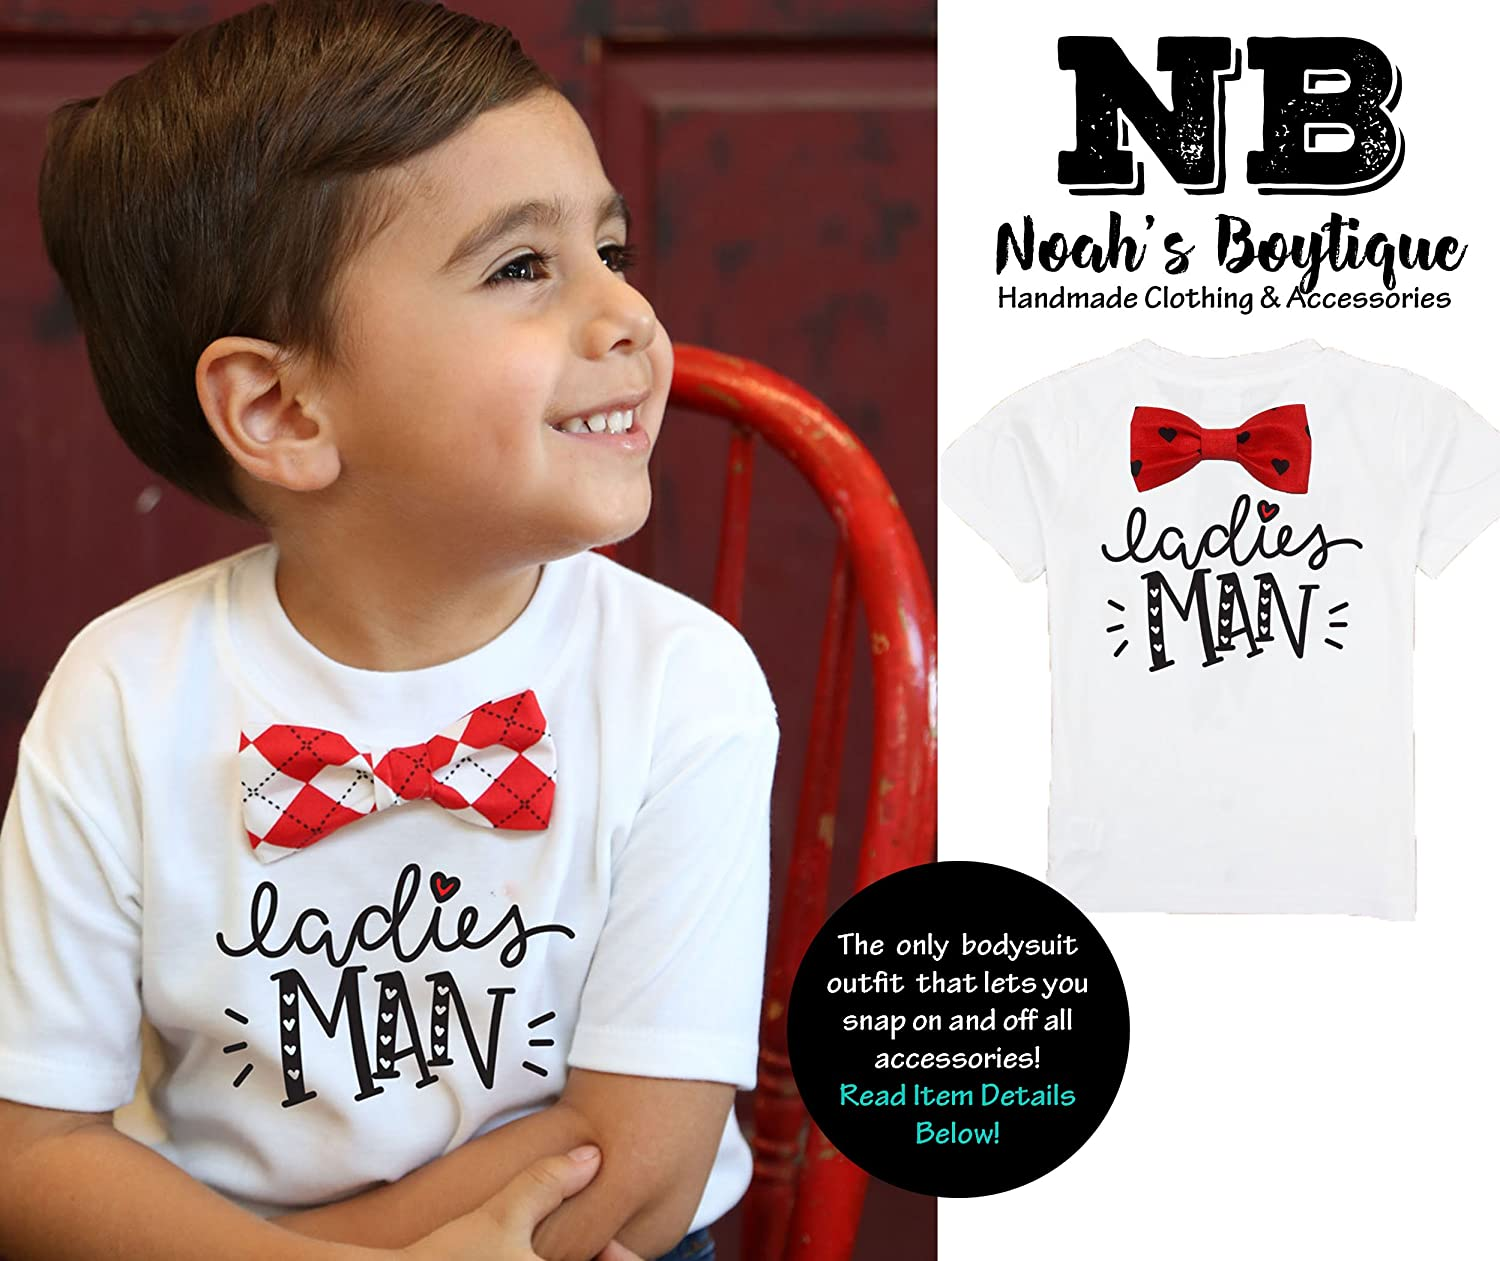 0a6ecb3352a7 Amazon.com: Noah's Boytique Baby Toddler Boy Valentines Day Outfit Ladies  Man with Bow Tie: Clothing